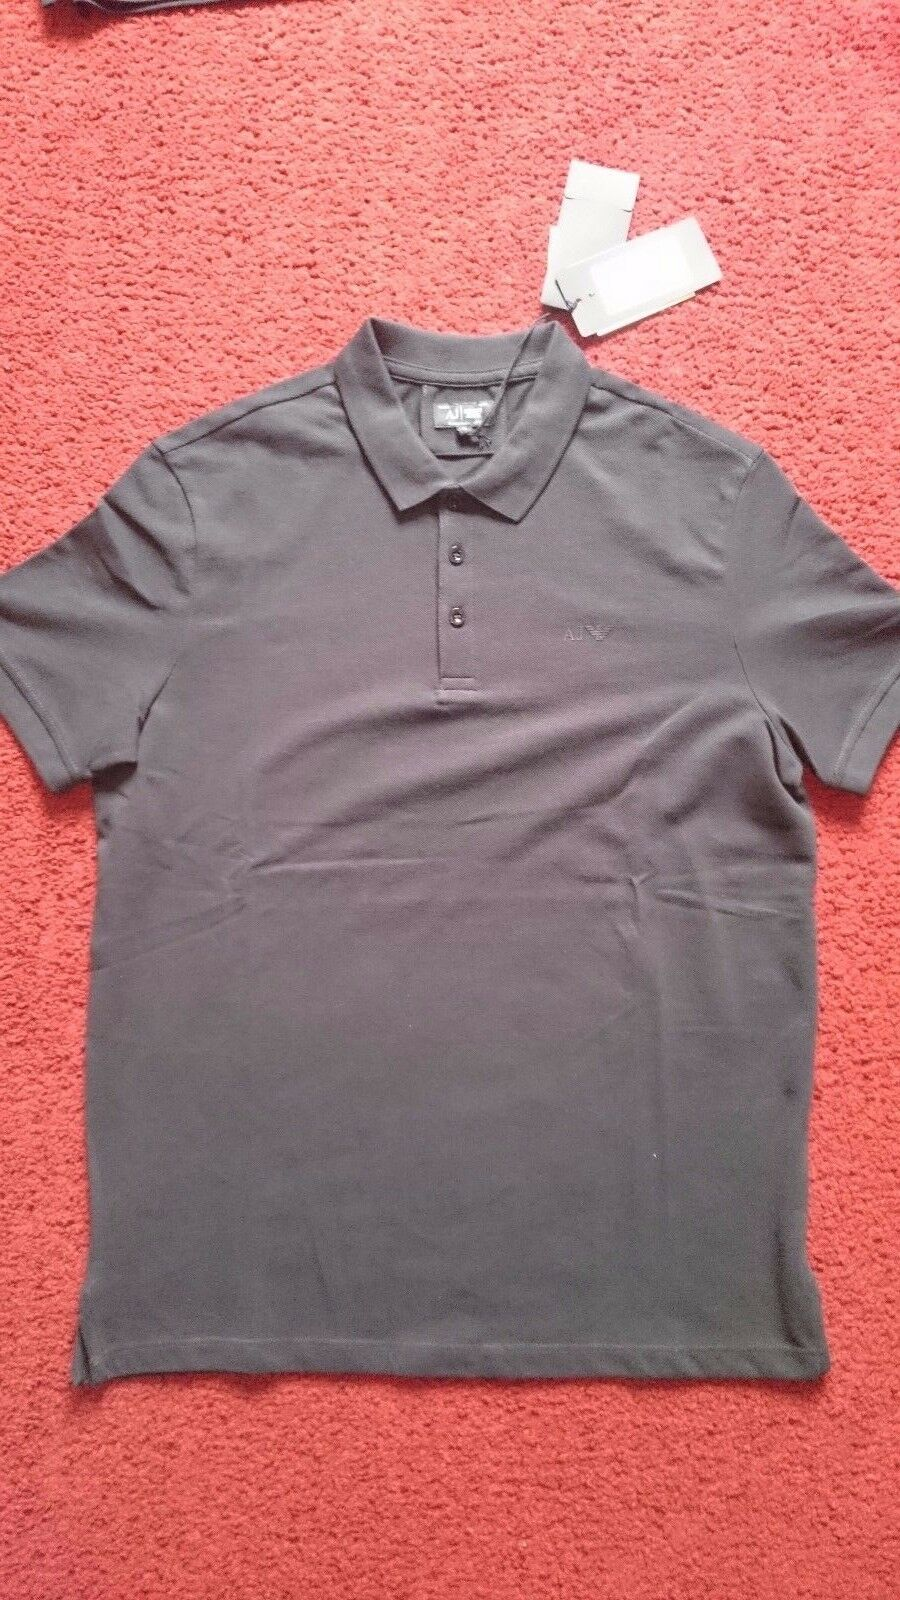 MENS ARMANI JEANS POLO SHIRT blueE NOTTE (NAVY) SIZE MEDIUM  BRAND NEW WITH TAGS